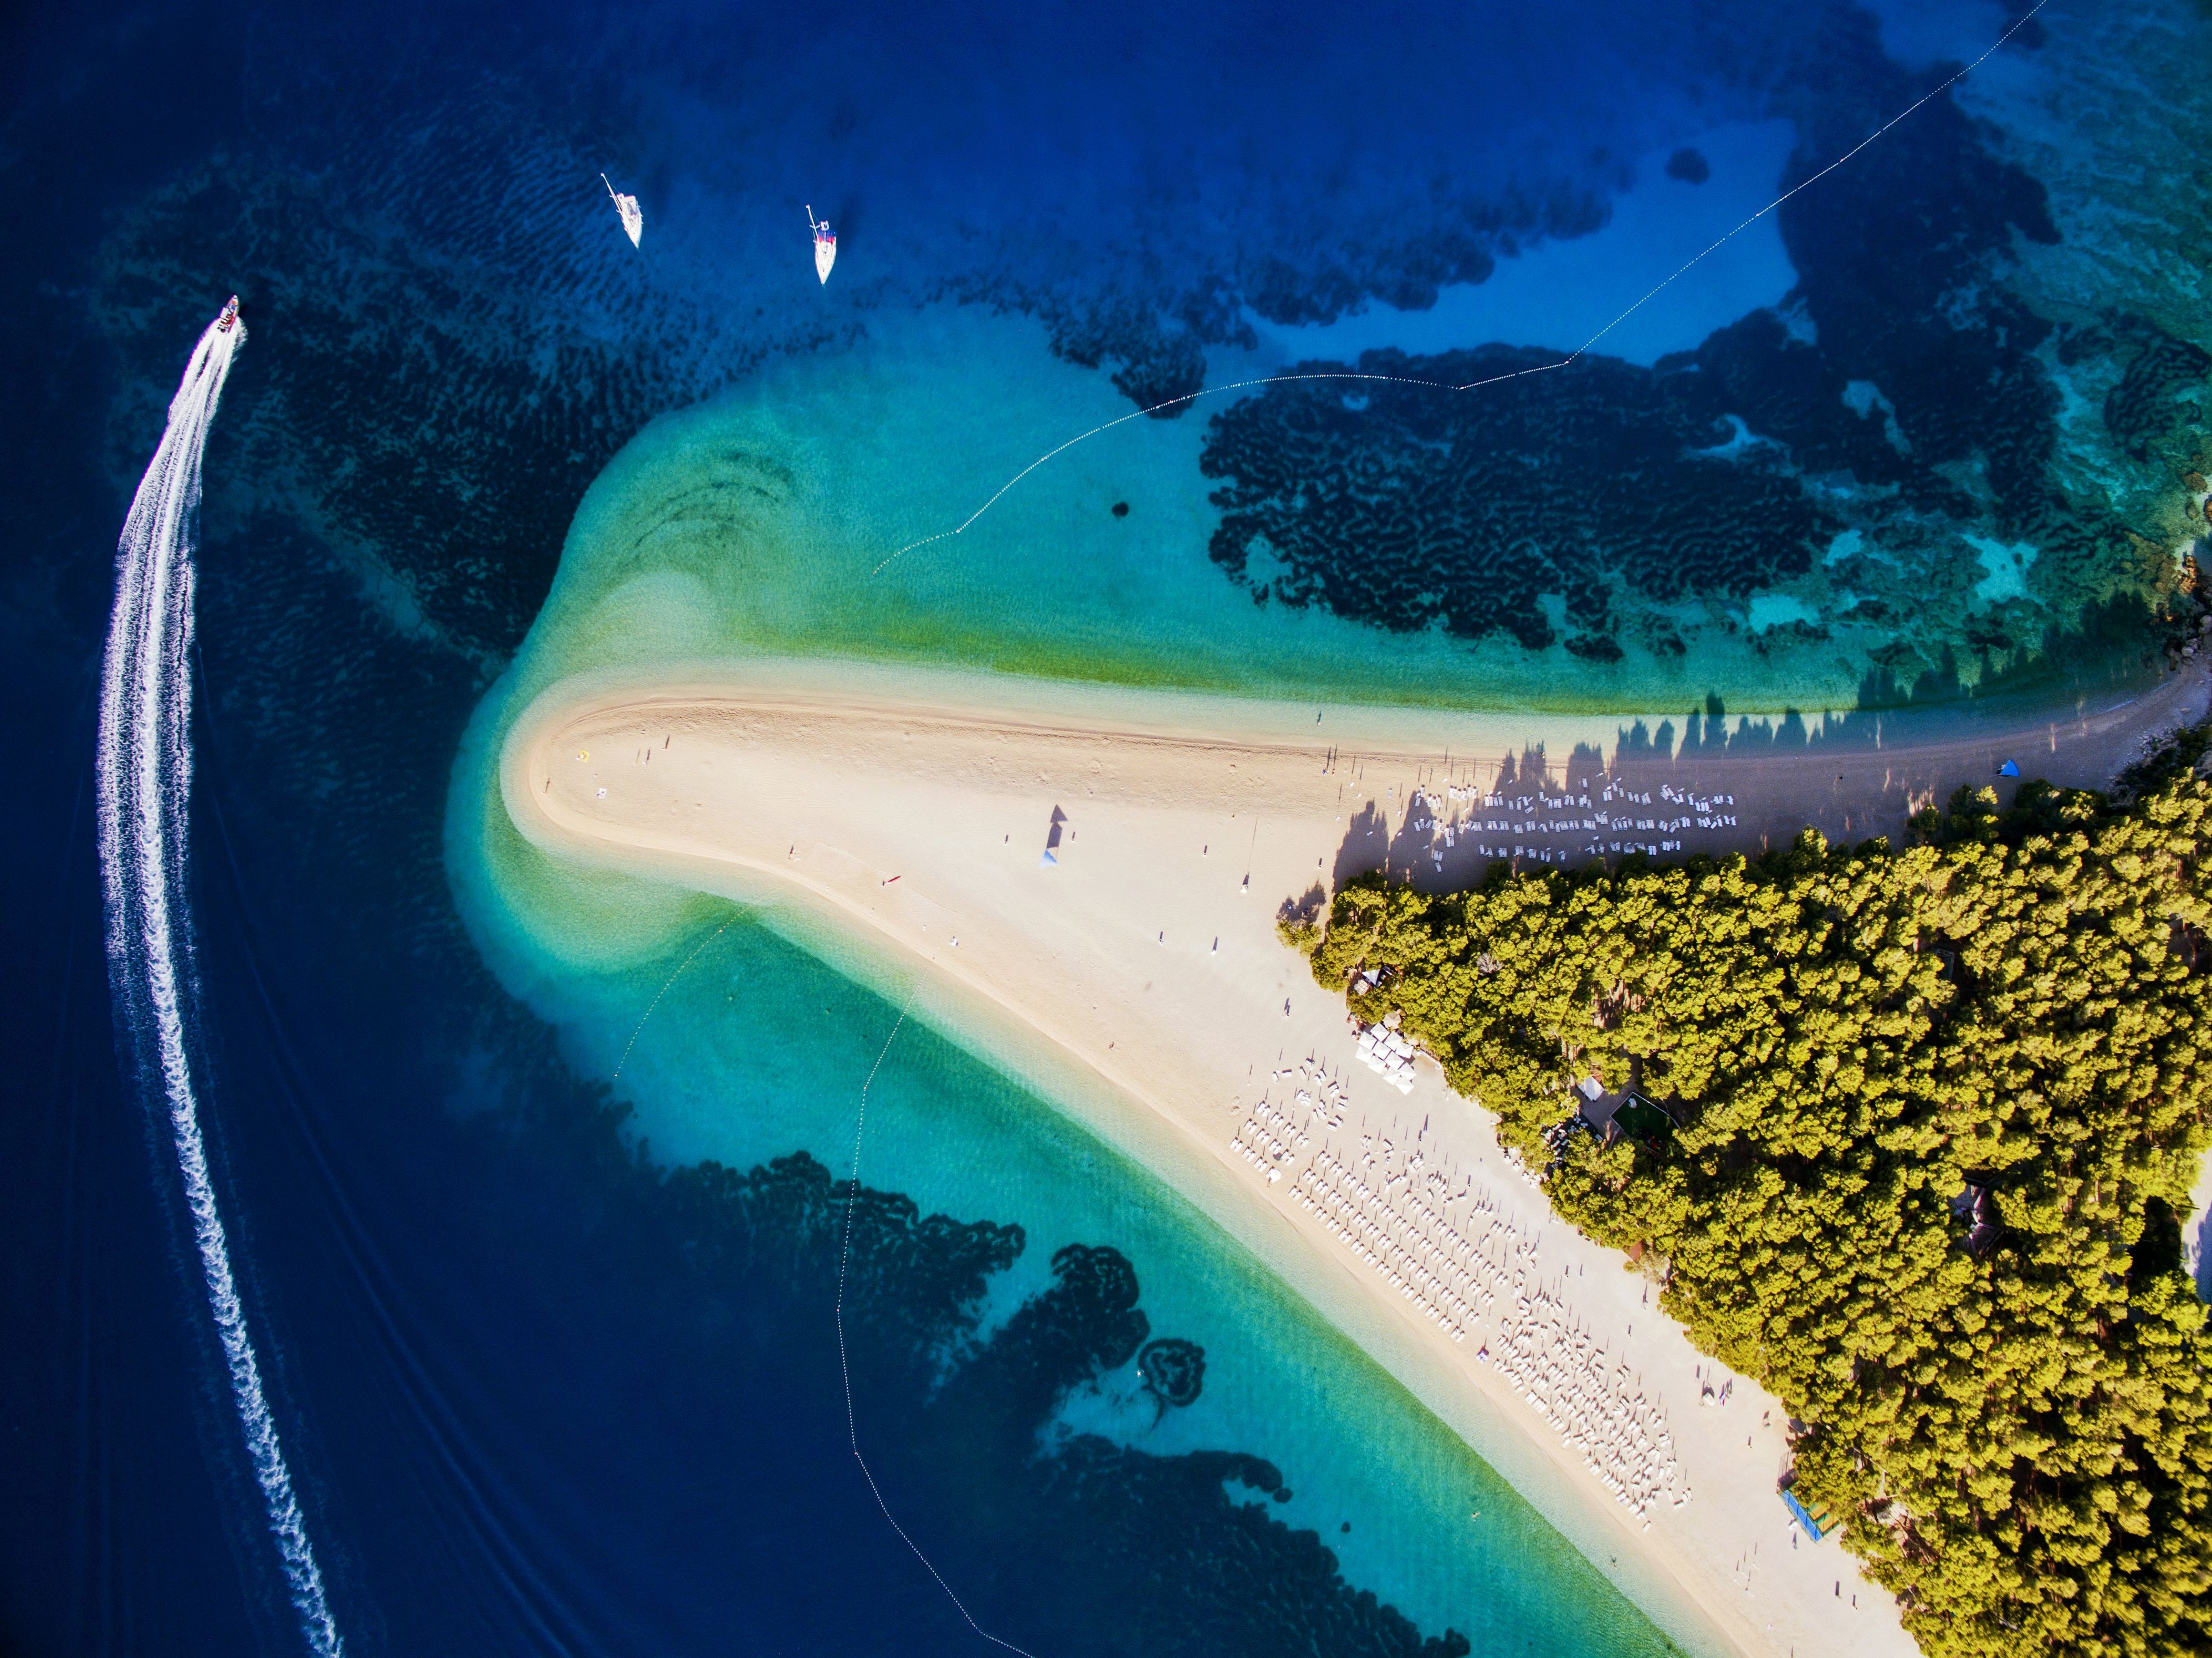 An aerial photo shows the bright colors that make up Croatia's Zlatni Rat, or Golden Cape. The sandy spit of land is often named one of Europe's best beaches.